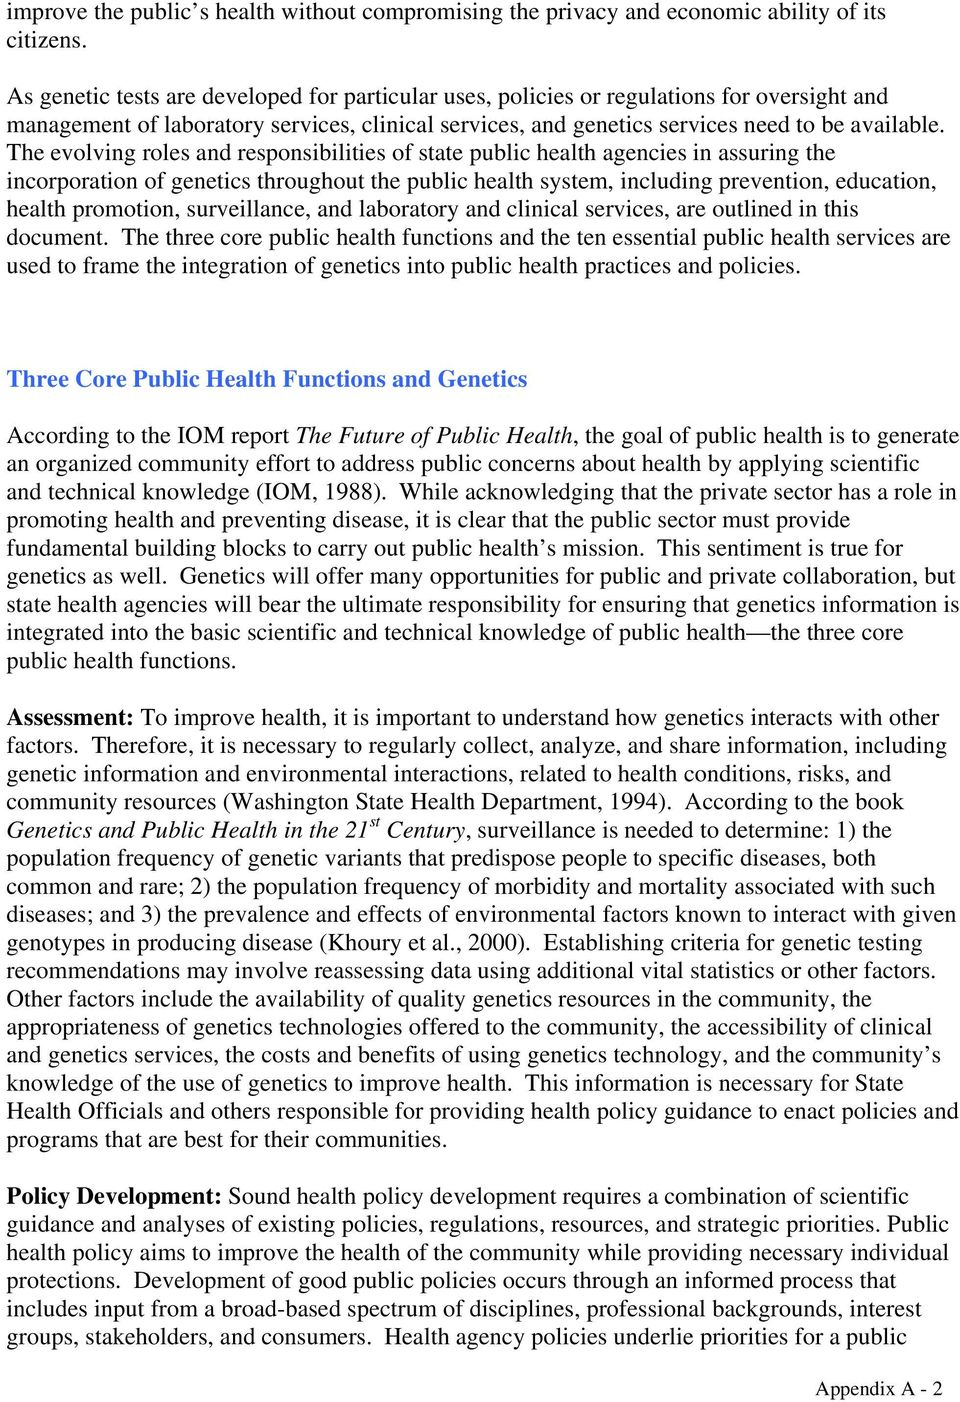 The evolving roles and responsibilities of state public health agencies in assuring the incorporation of genetics throughout the public health system, including prevention, education, health